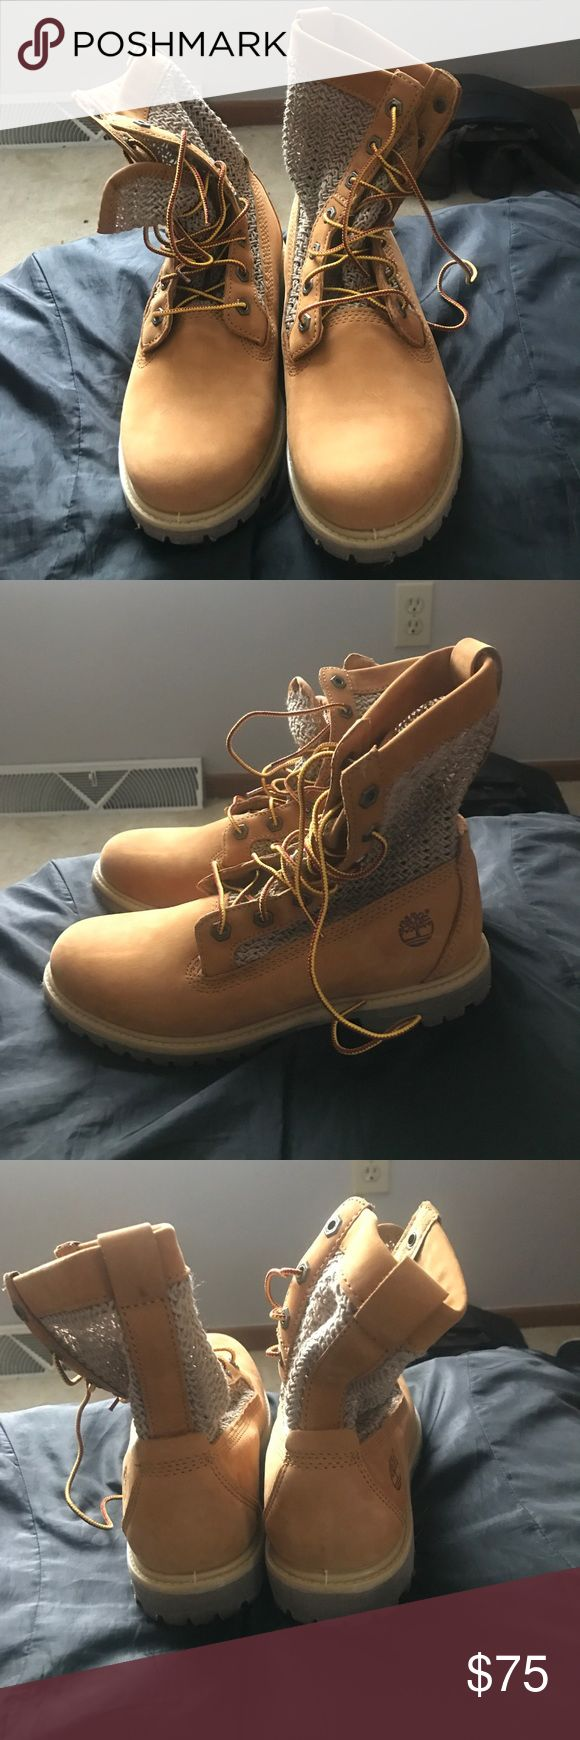 Timberland boots Size 9 women's. Good condition. I only wore once, so minimal signs of wear. No box Timberland Shoes